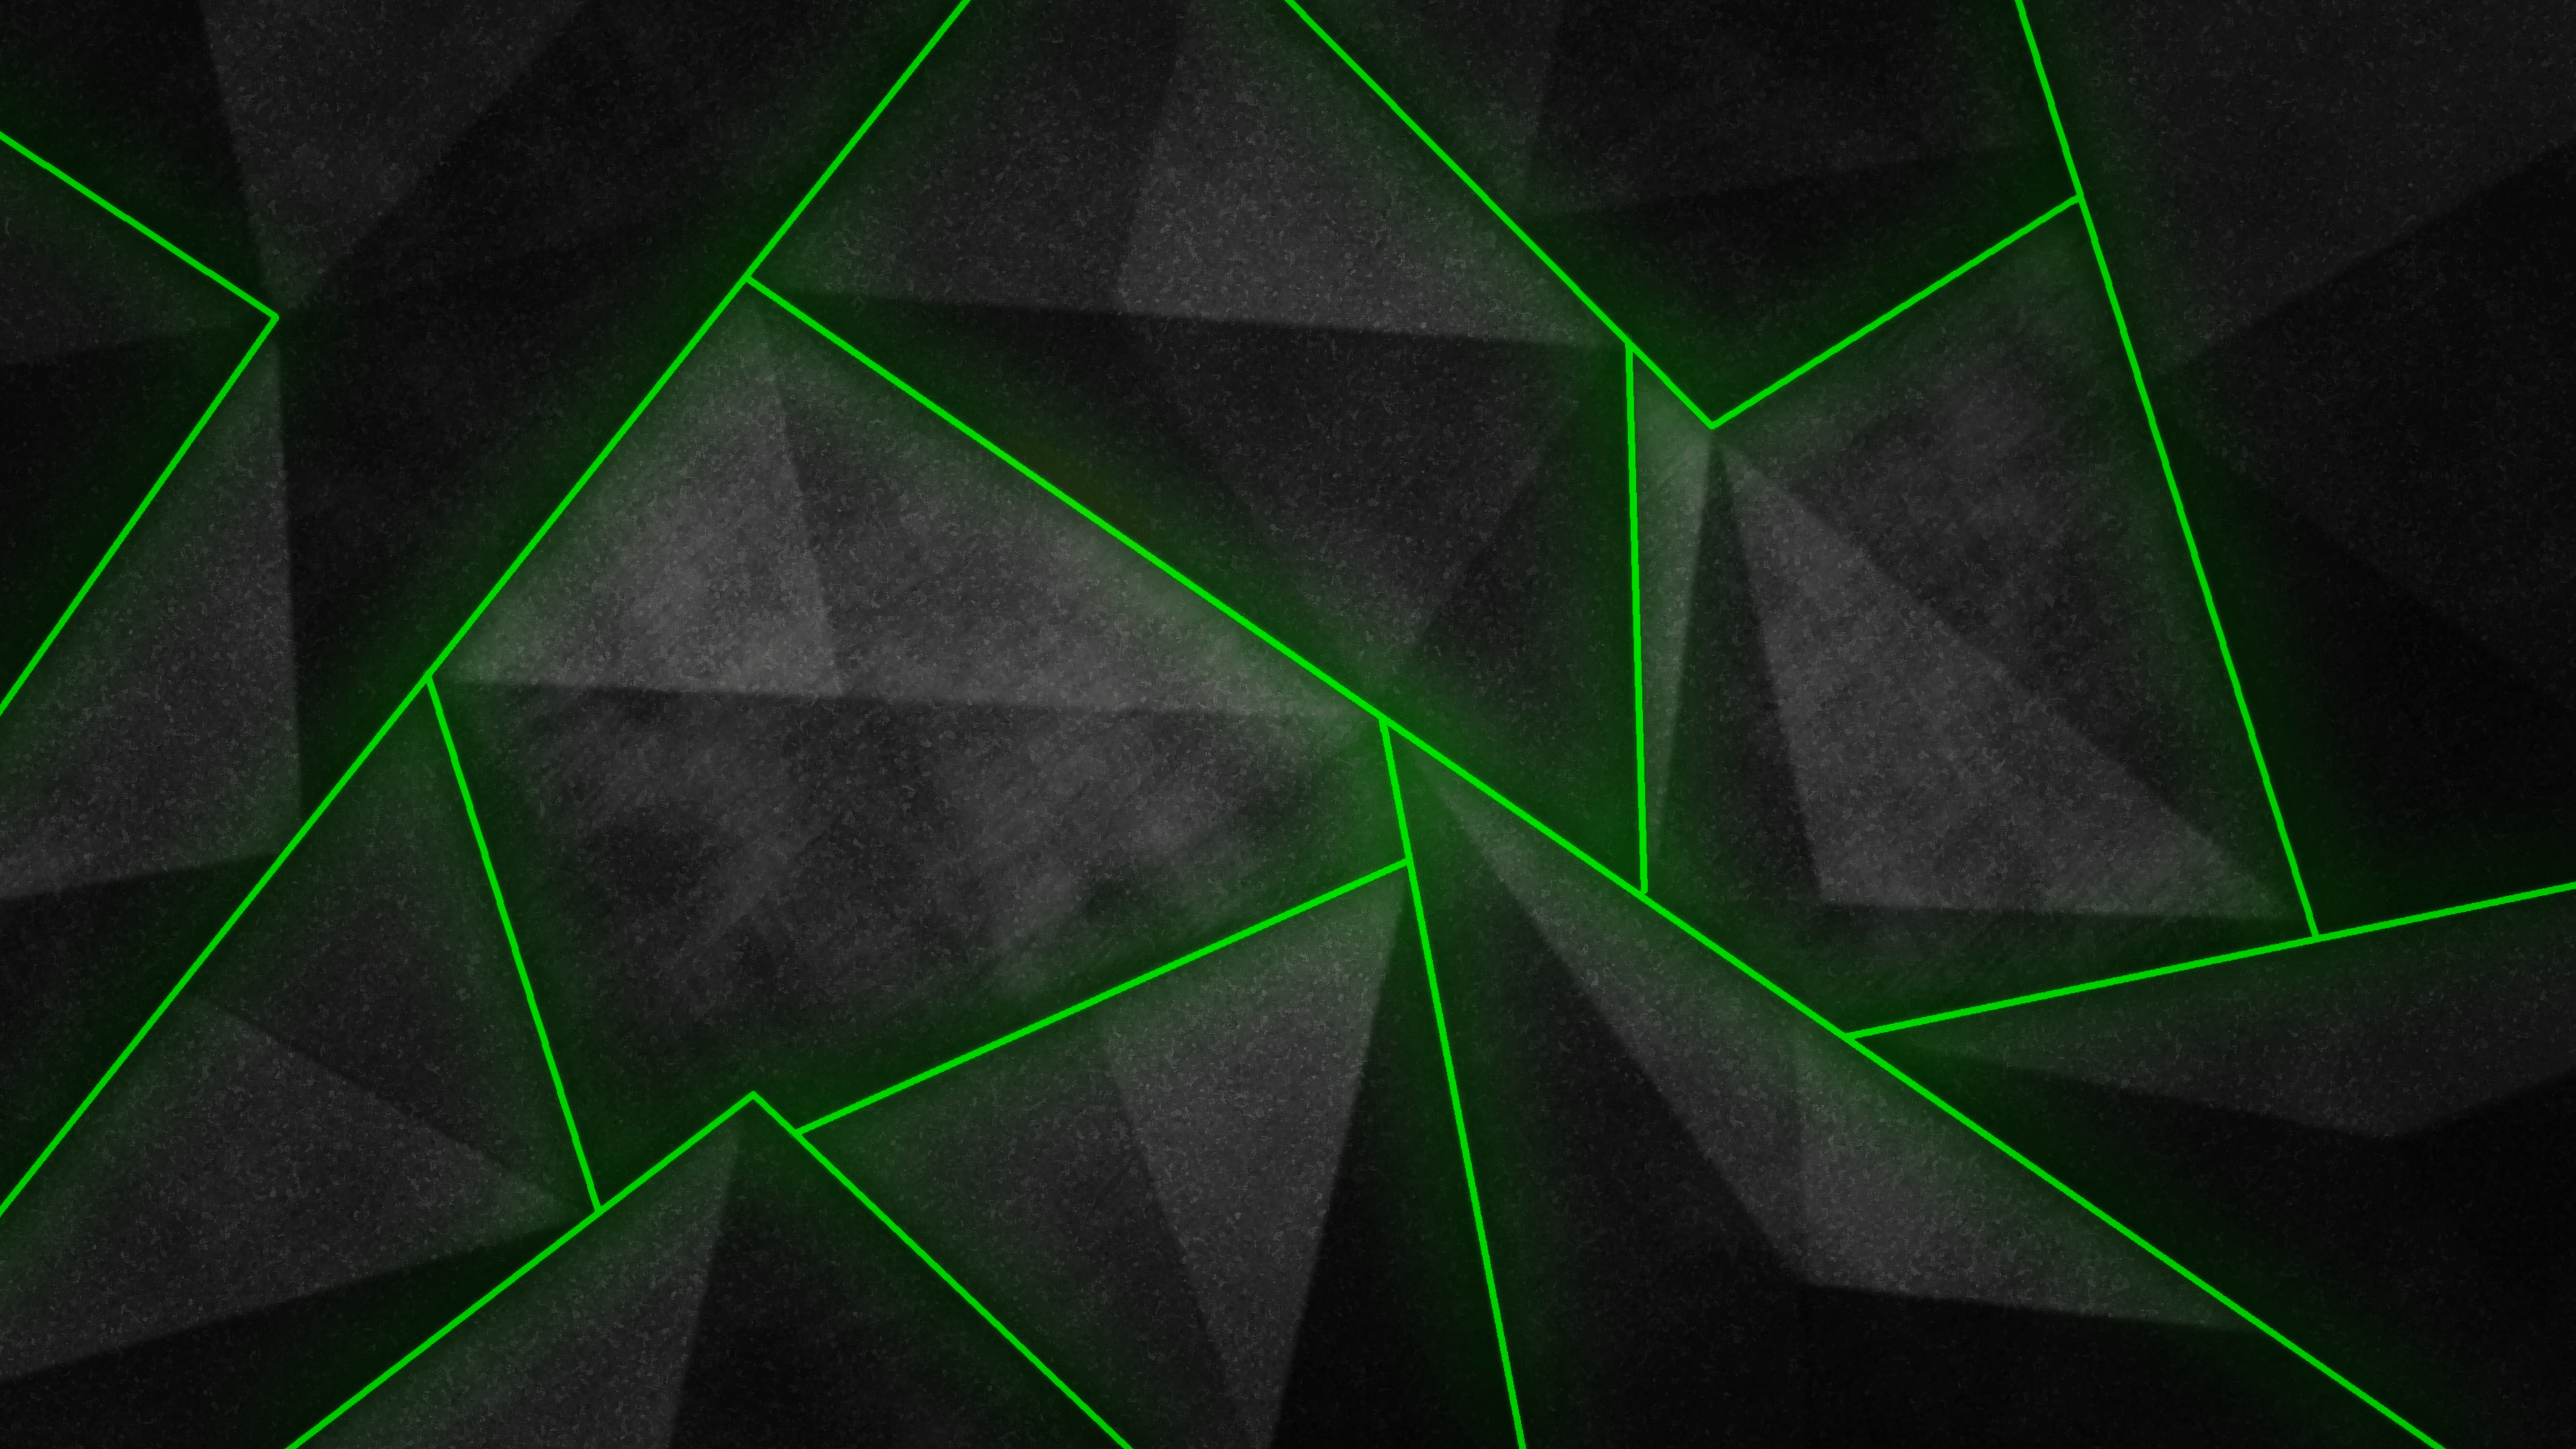 Black And Green Wallpapers Top Free Black And Green Backgrounds Wallpaperaccess Cool Backgrounds Wallpapers Black Hd Wallpaper Red And Black Wallpaper